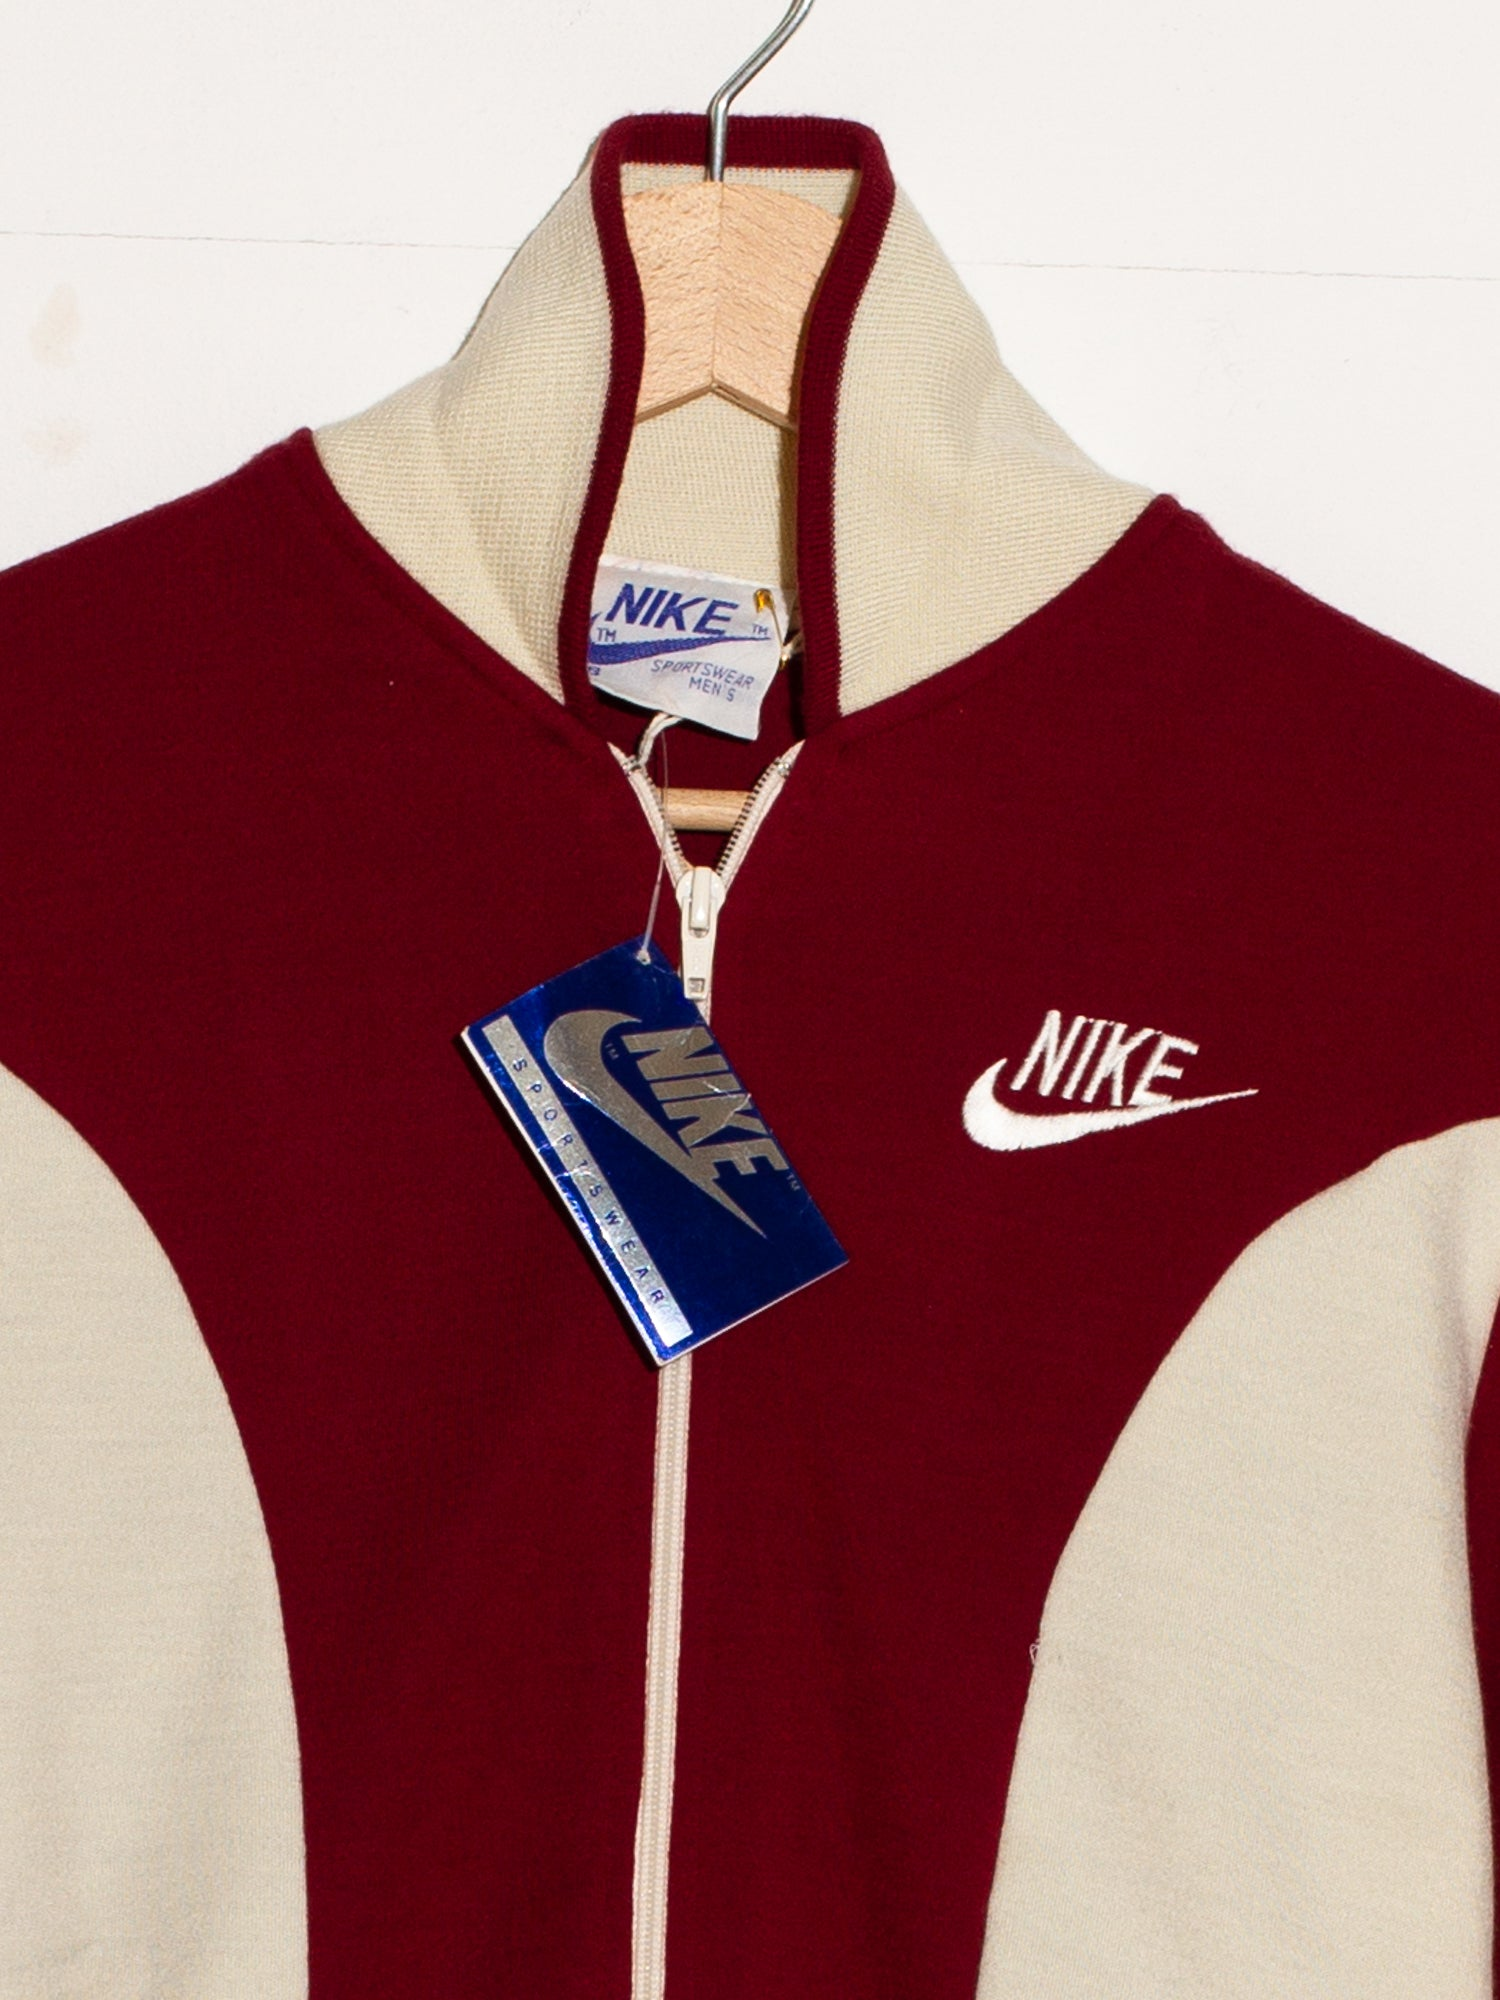 NIKE VINTAGE SWEAT JACKET